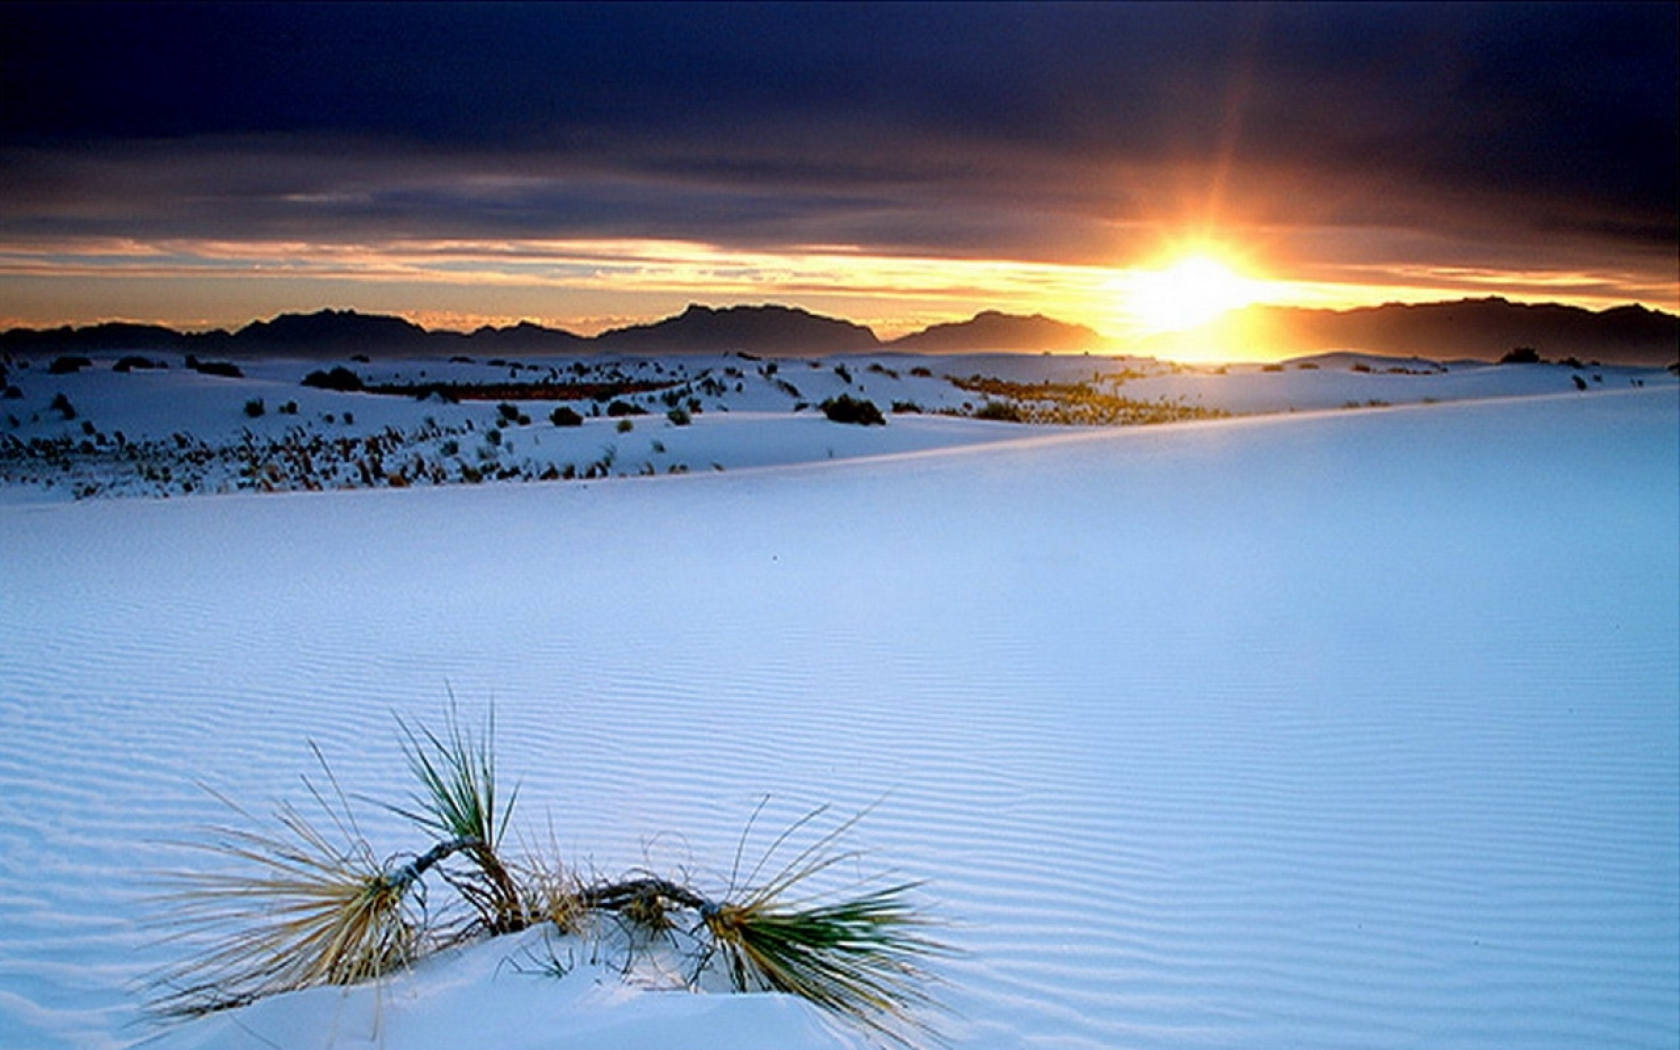 new mexico white sands national monument 1280x1024 wallpaper Wallpaper 1680x1050